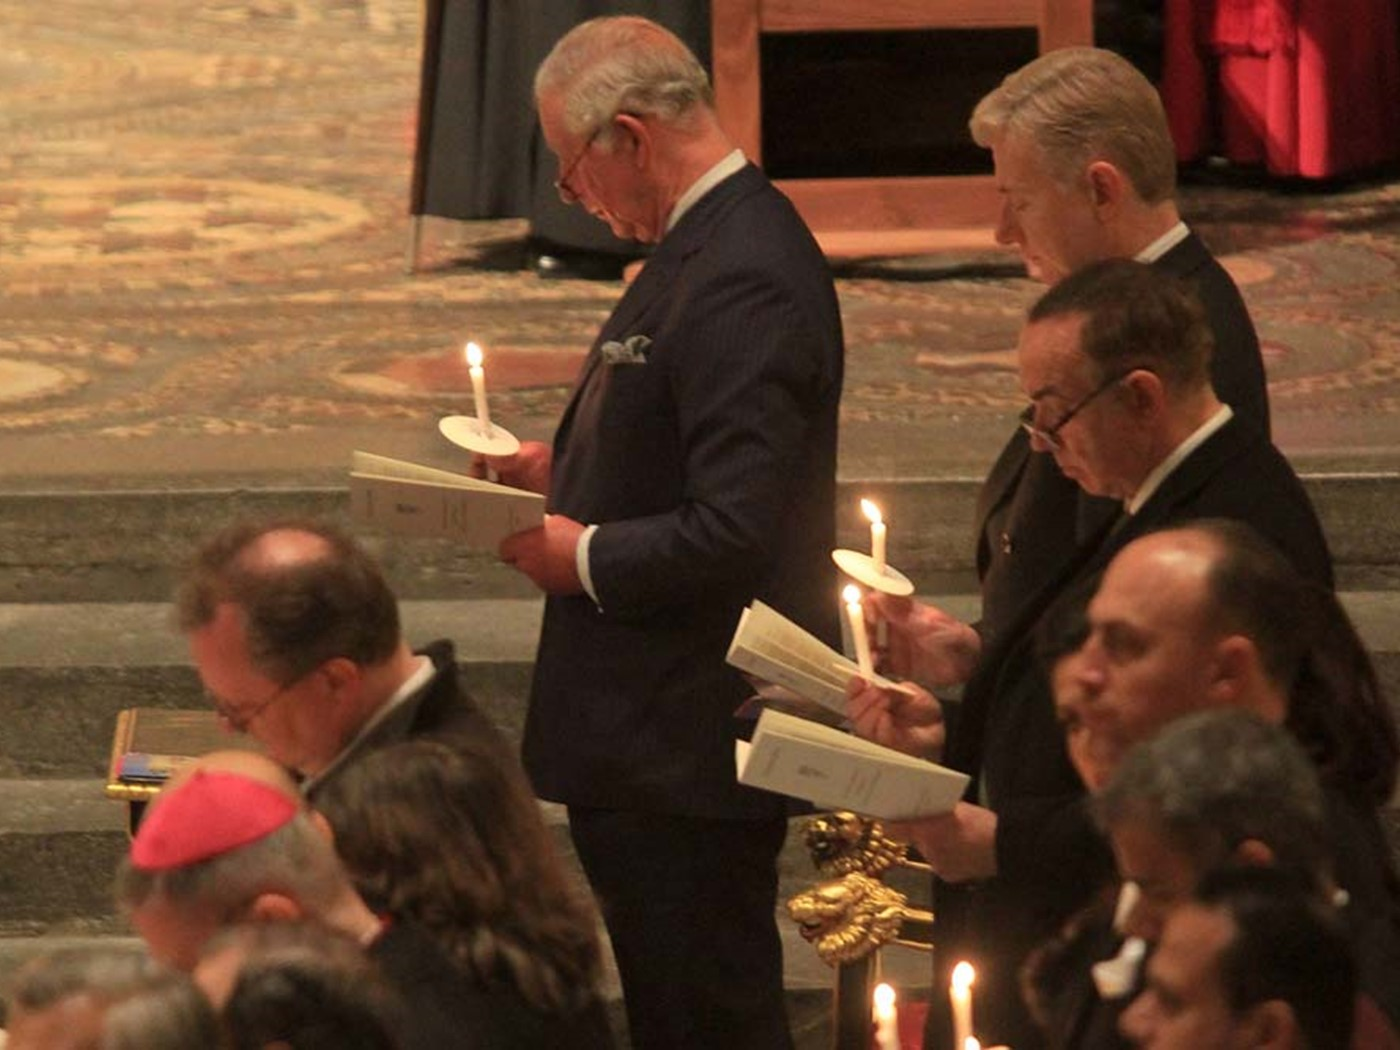 The congregation light candles